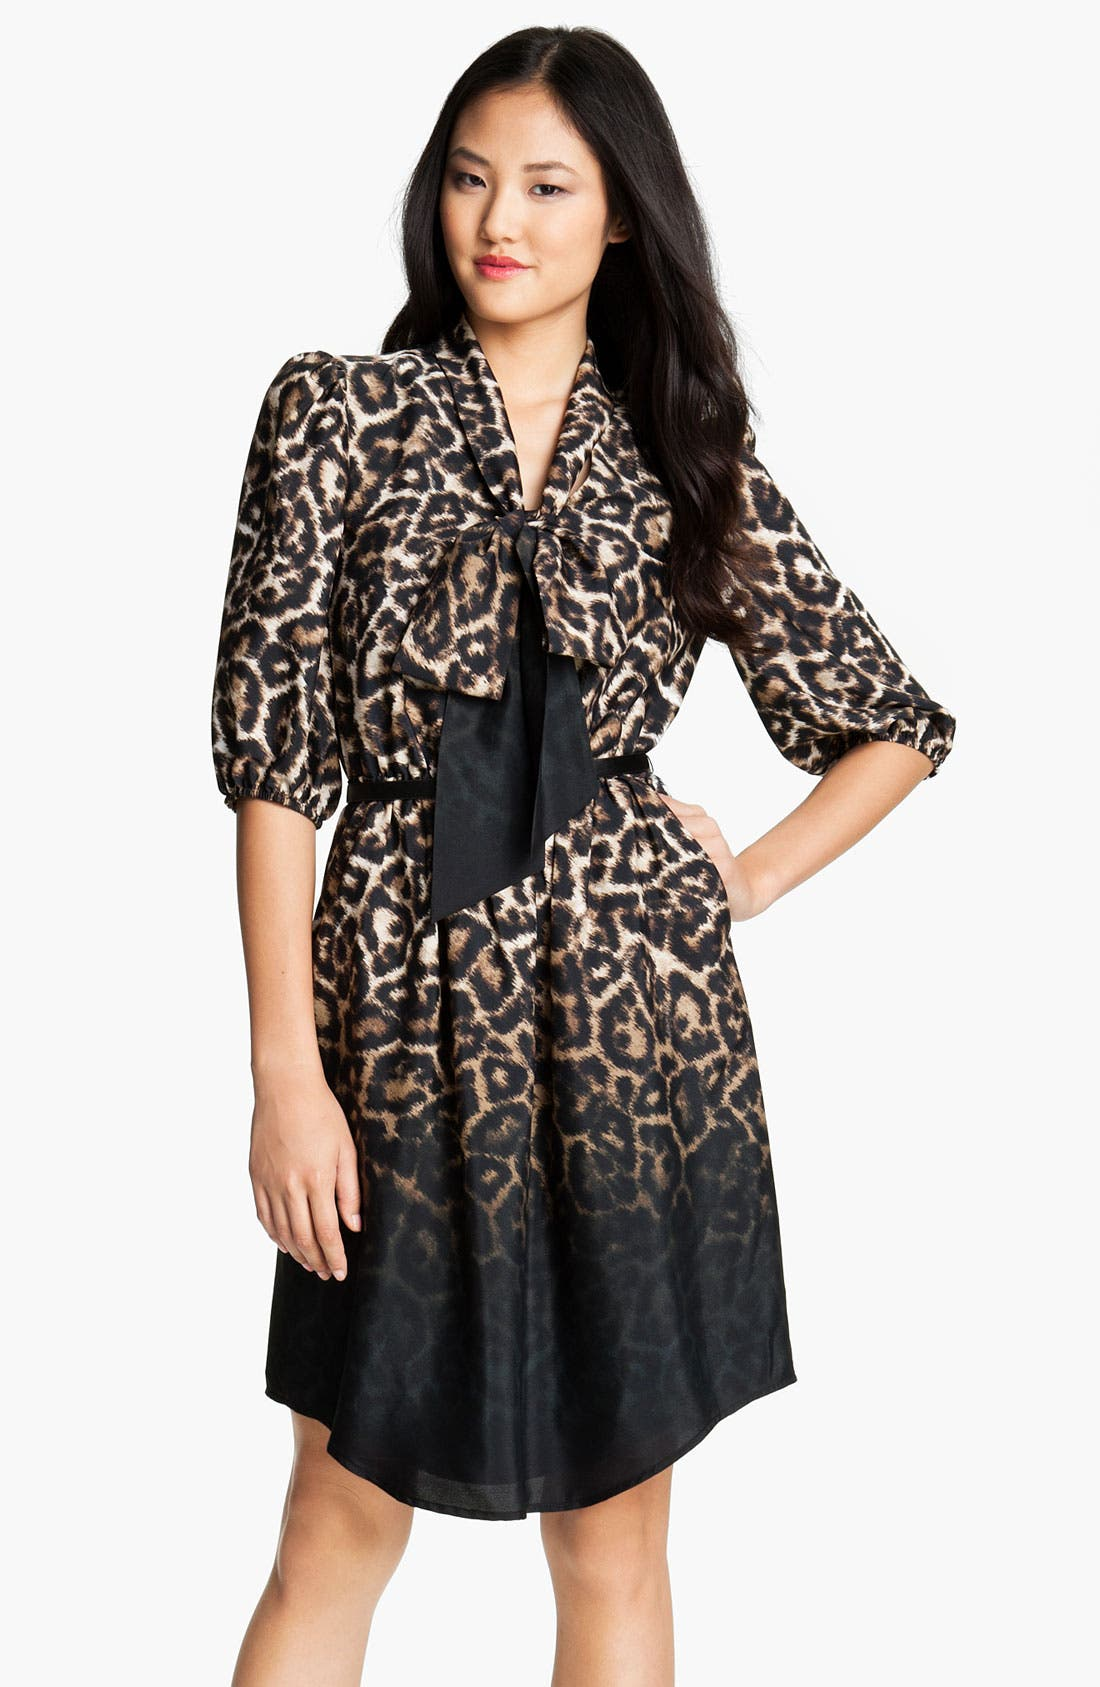 Alternate Image 1 Selected - Vince Camuto Leopard Print Tie Front Shirt Dress